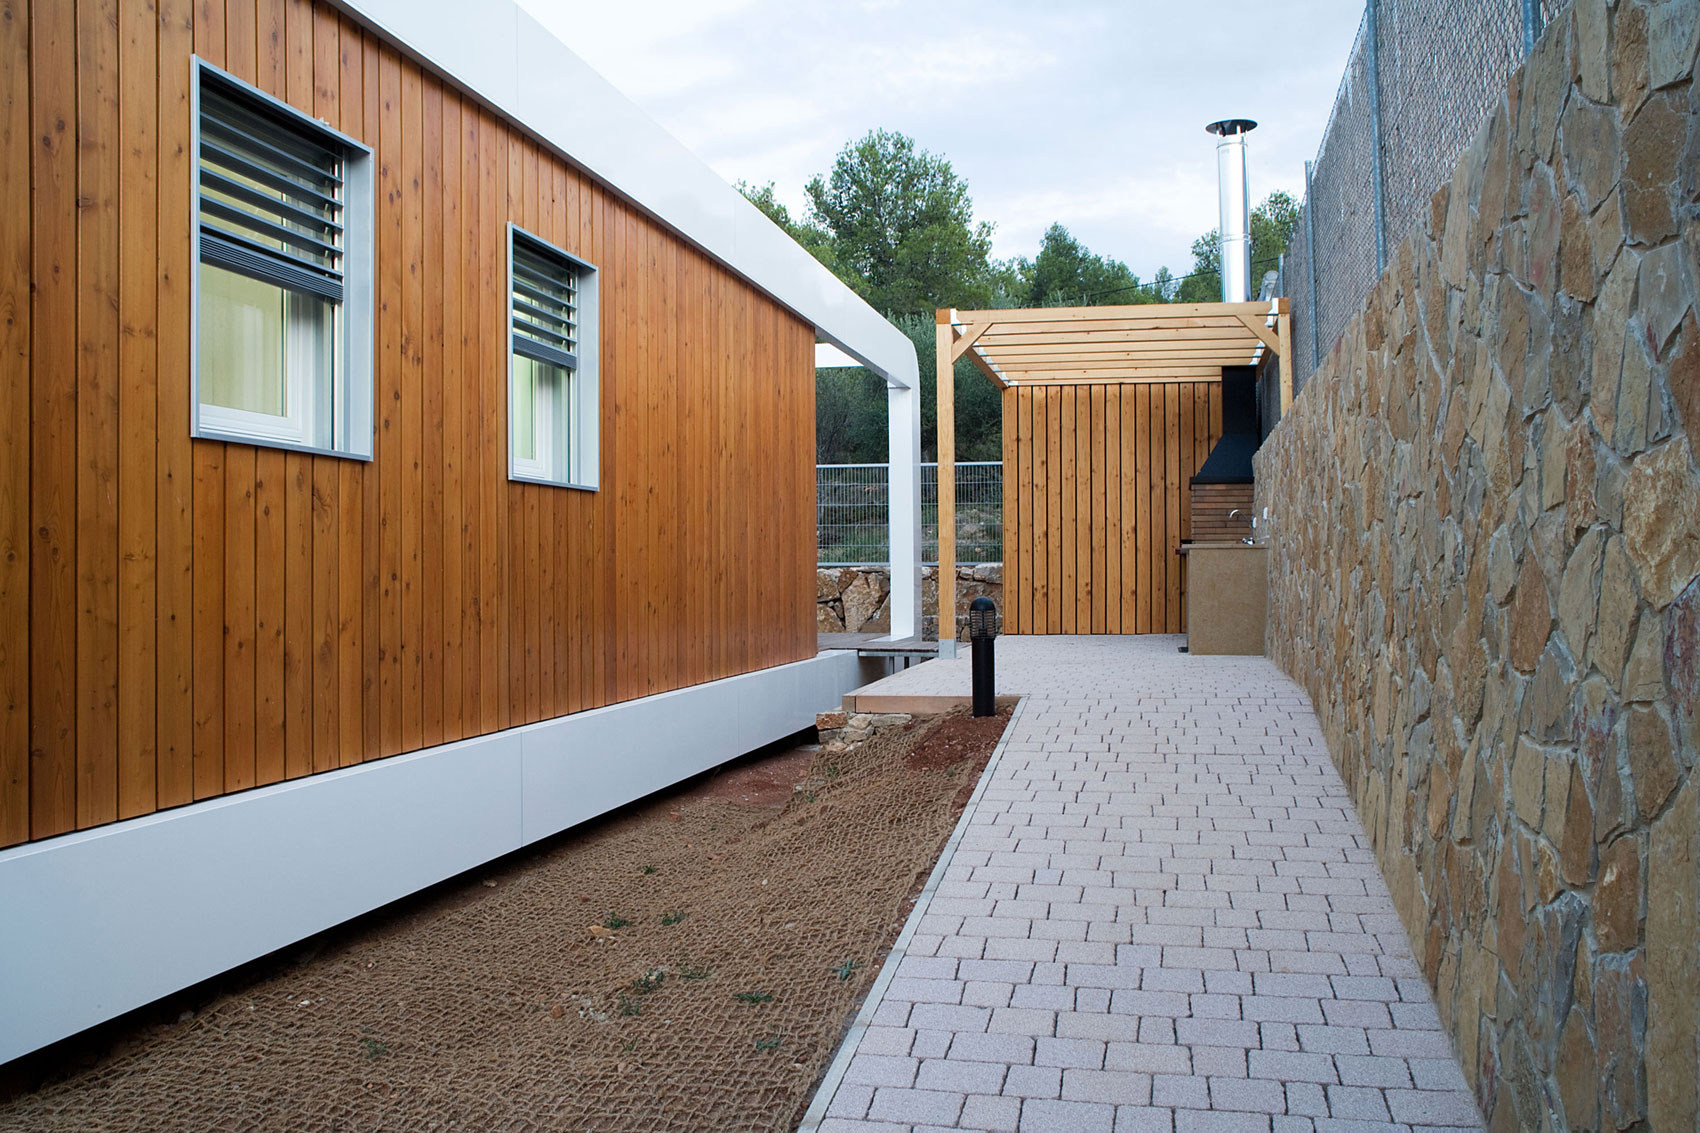 Eco-Friendly and Energy Efficiency with Mobile Device Control of El Refugio Inteligente by NOEM-05